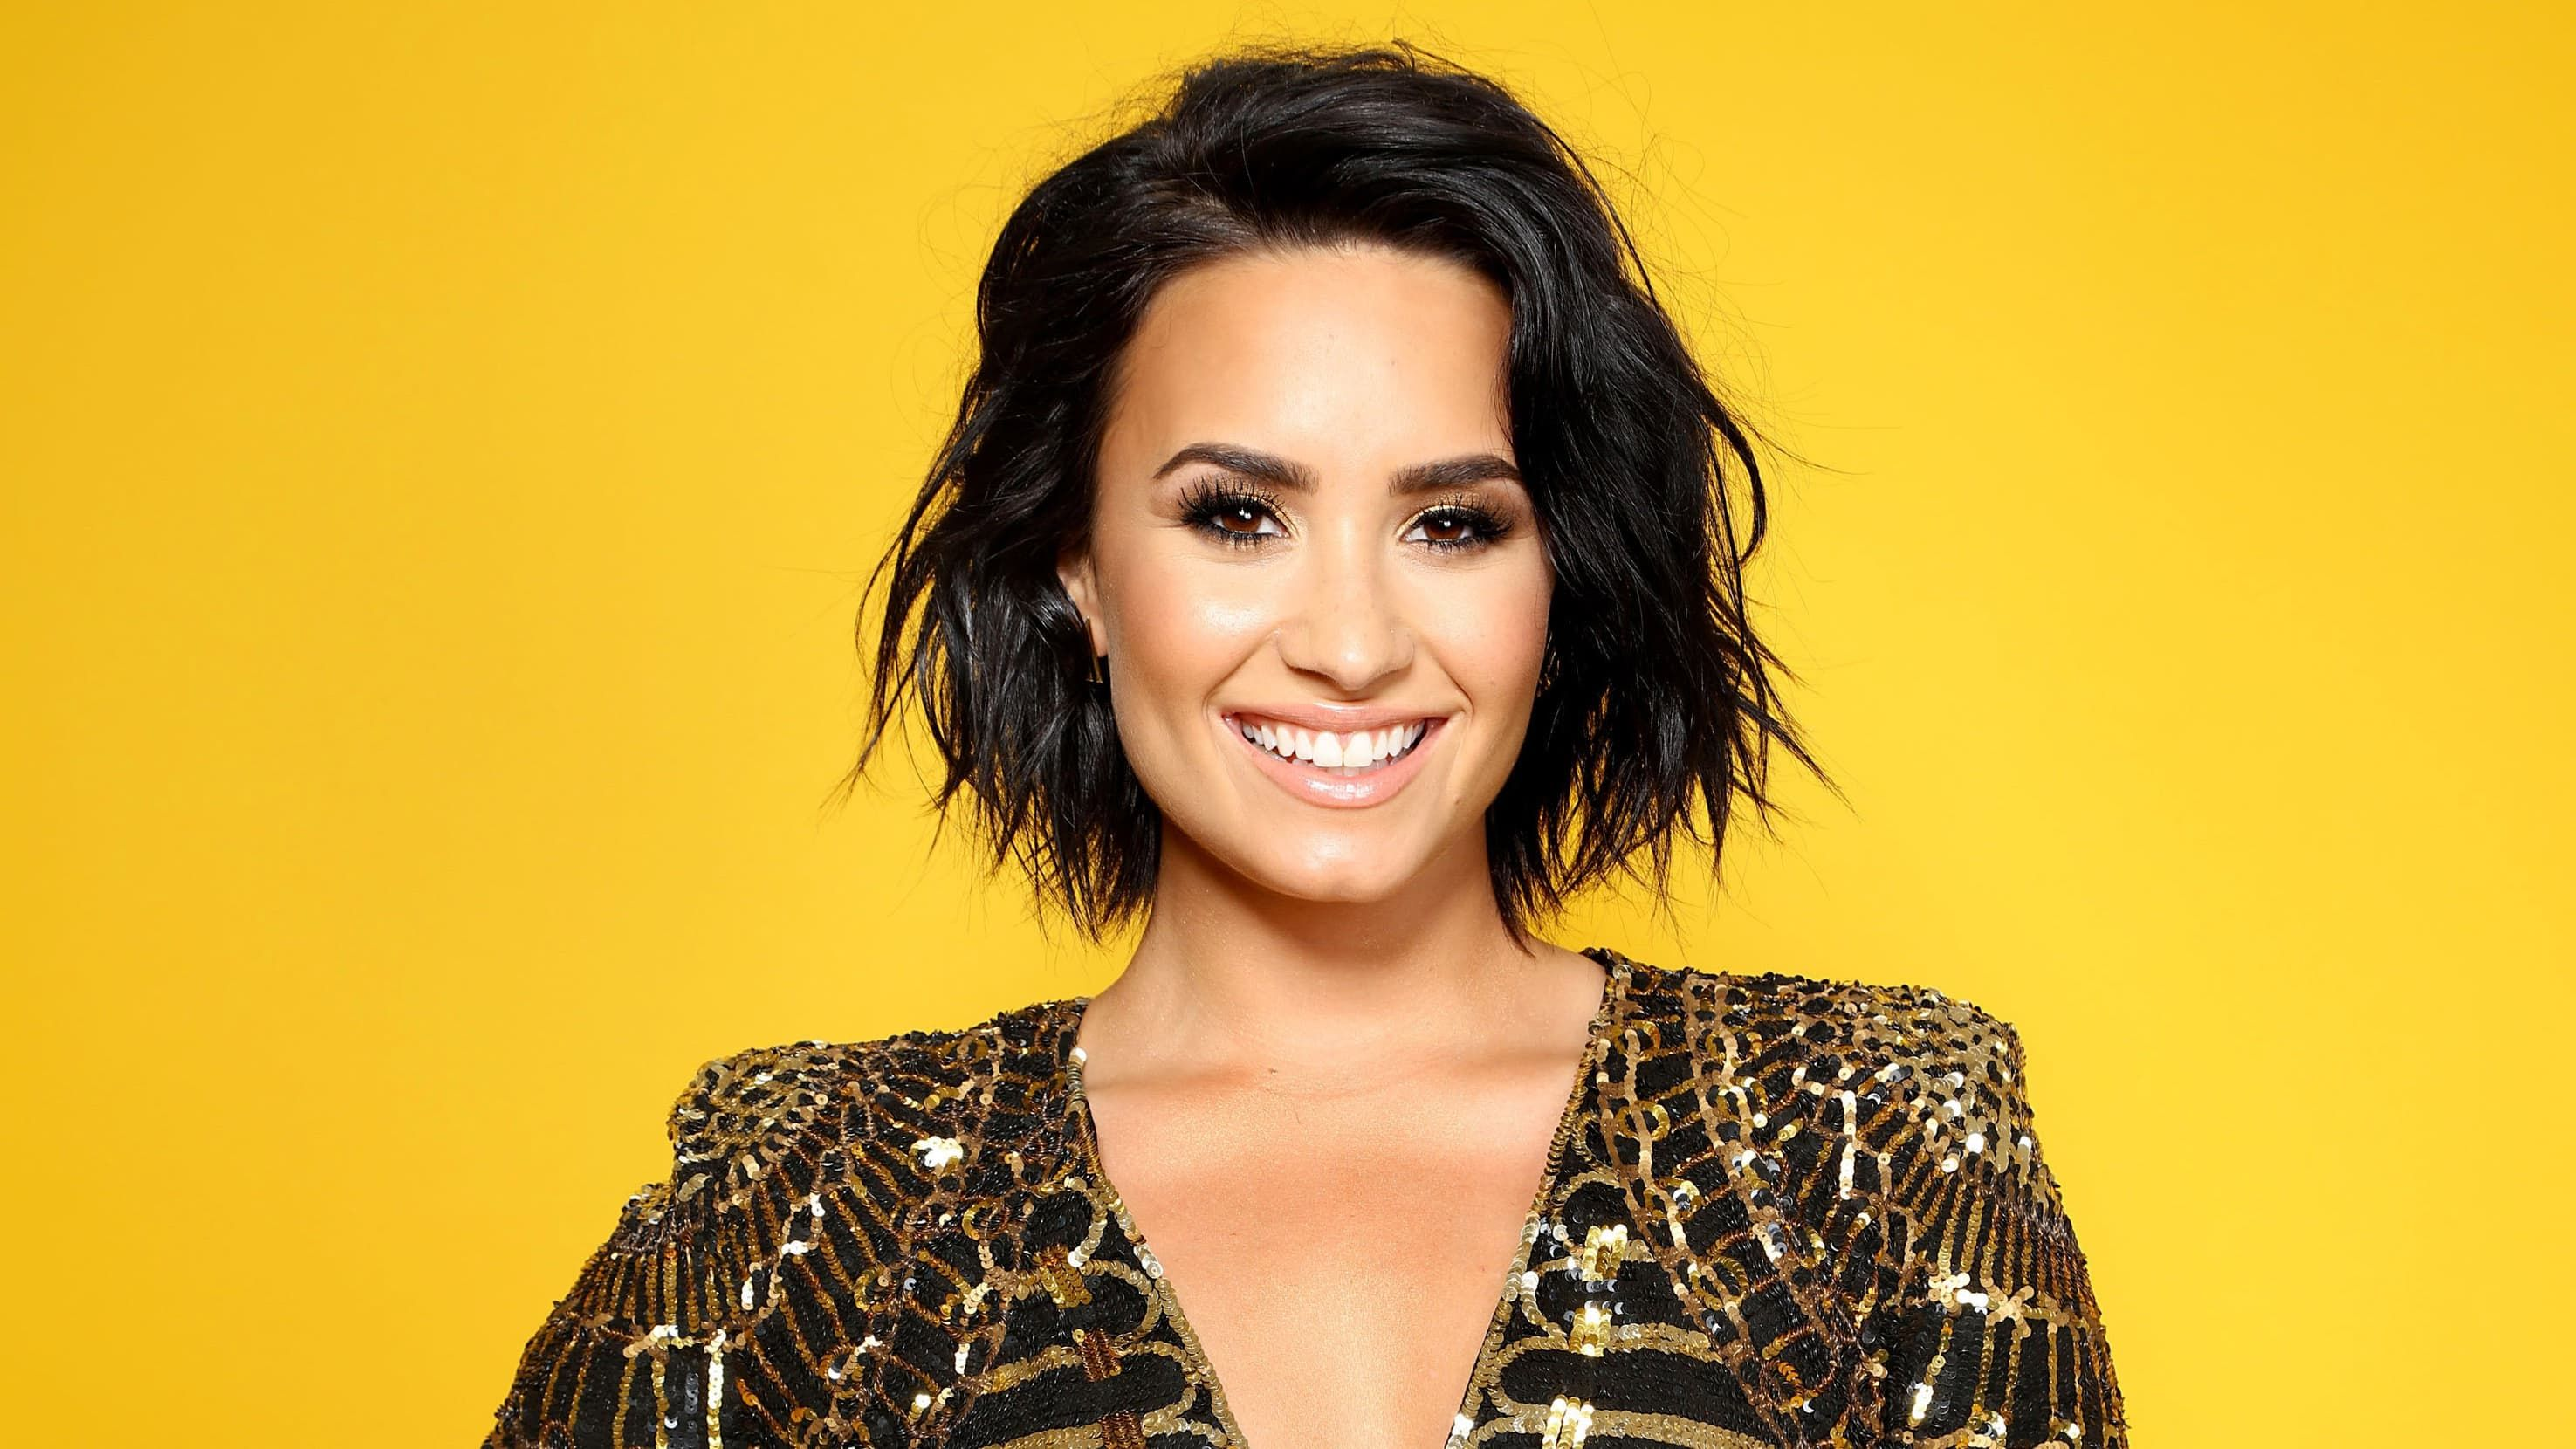 demi-lovato-hd-wallpapers-1 | demi lovato hd wallpapers | pinterest